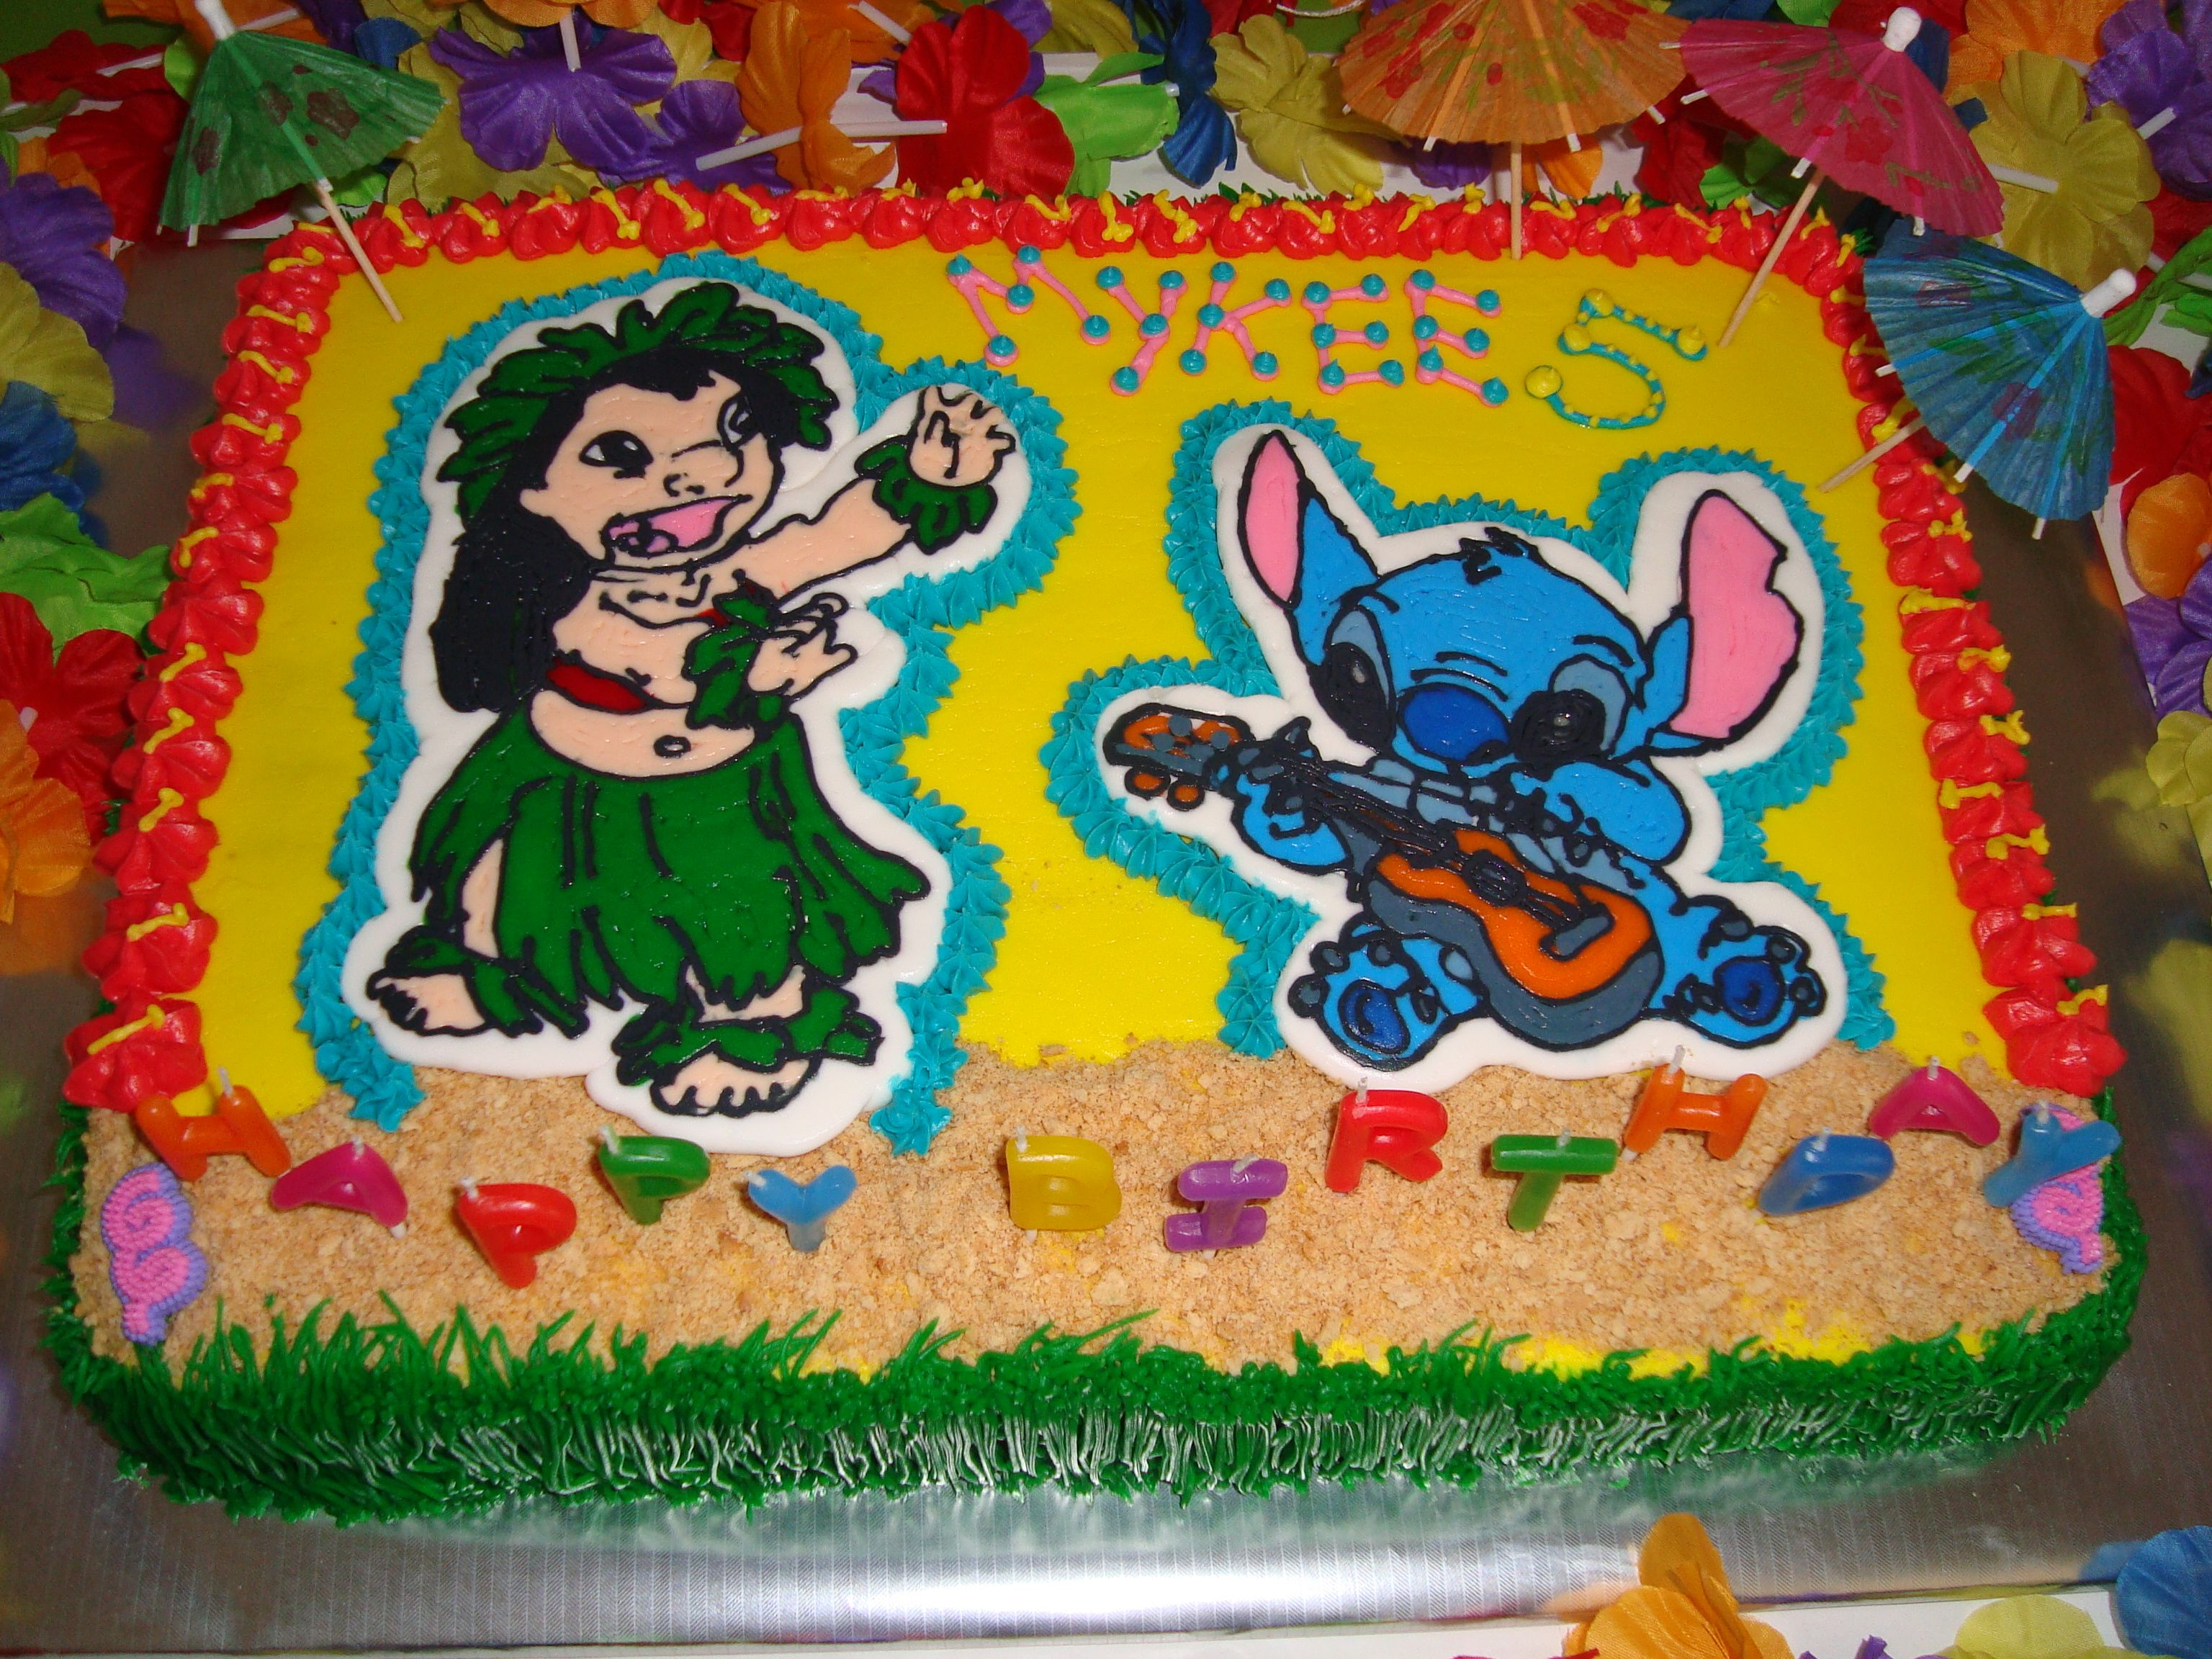 Lilo Stitch Birthday Cake Diva Design Custom Cakes Cakes